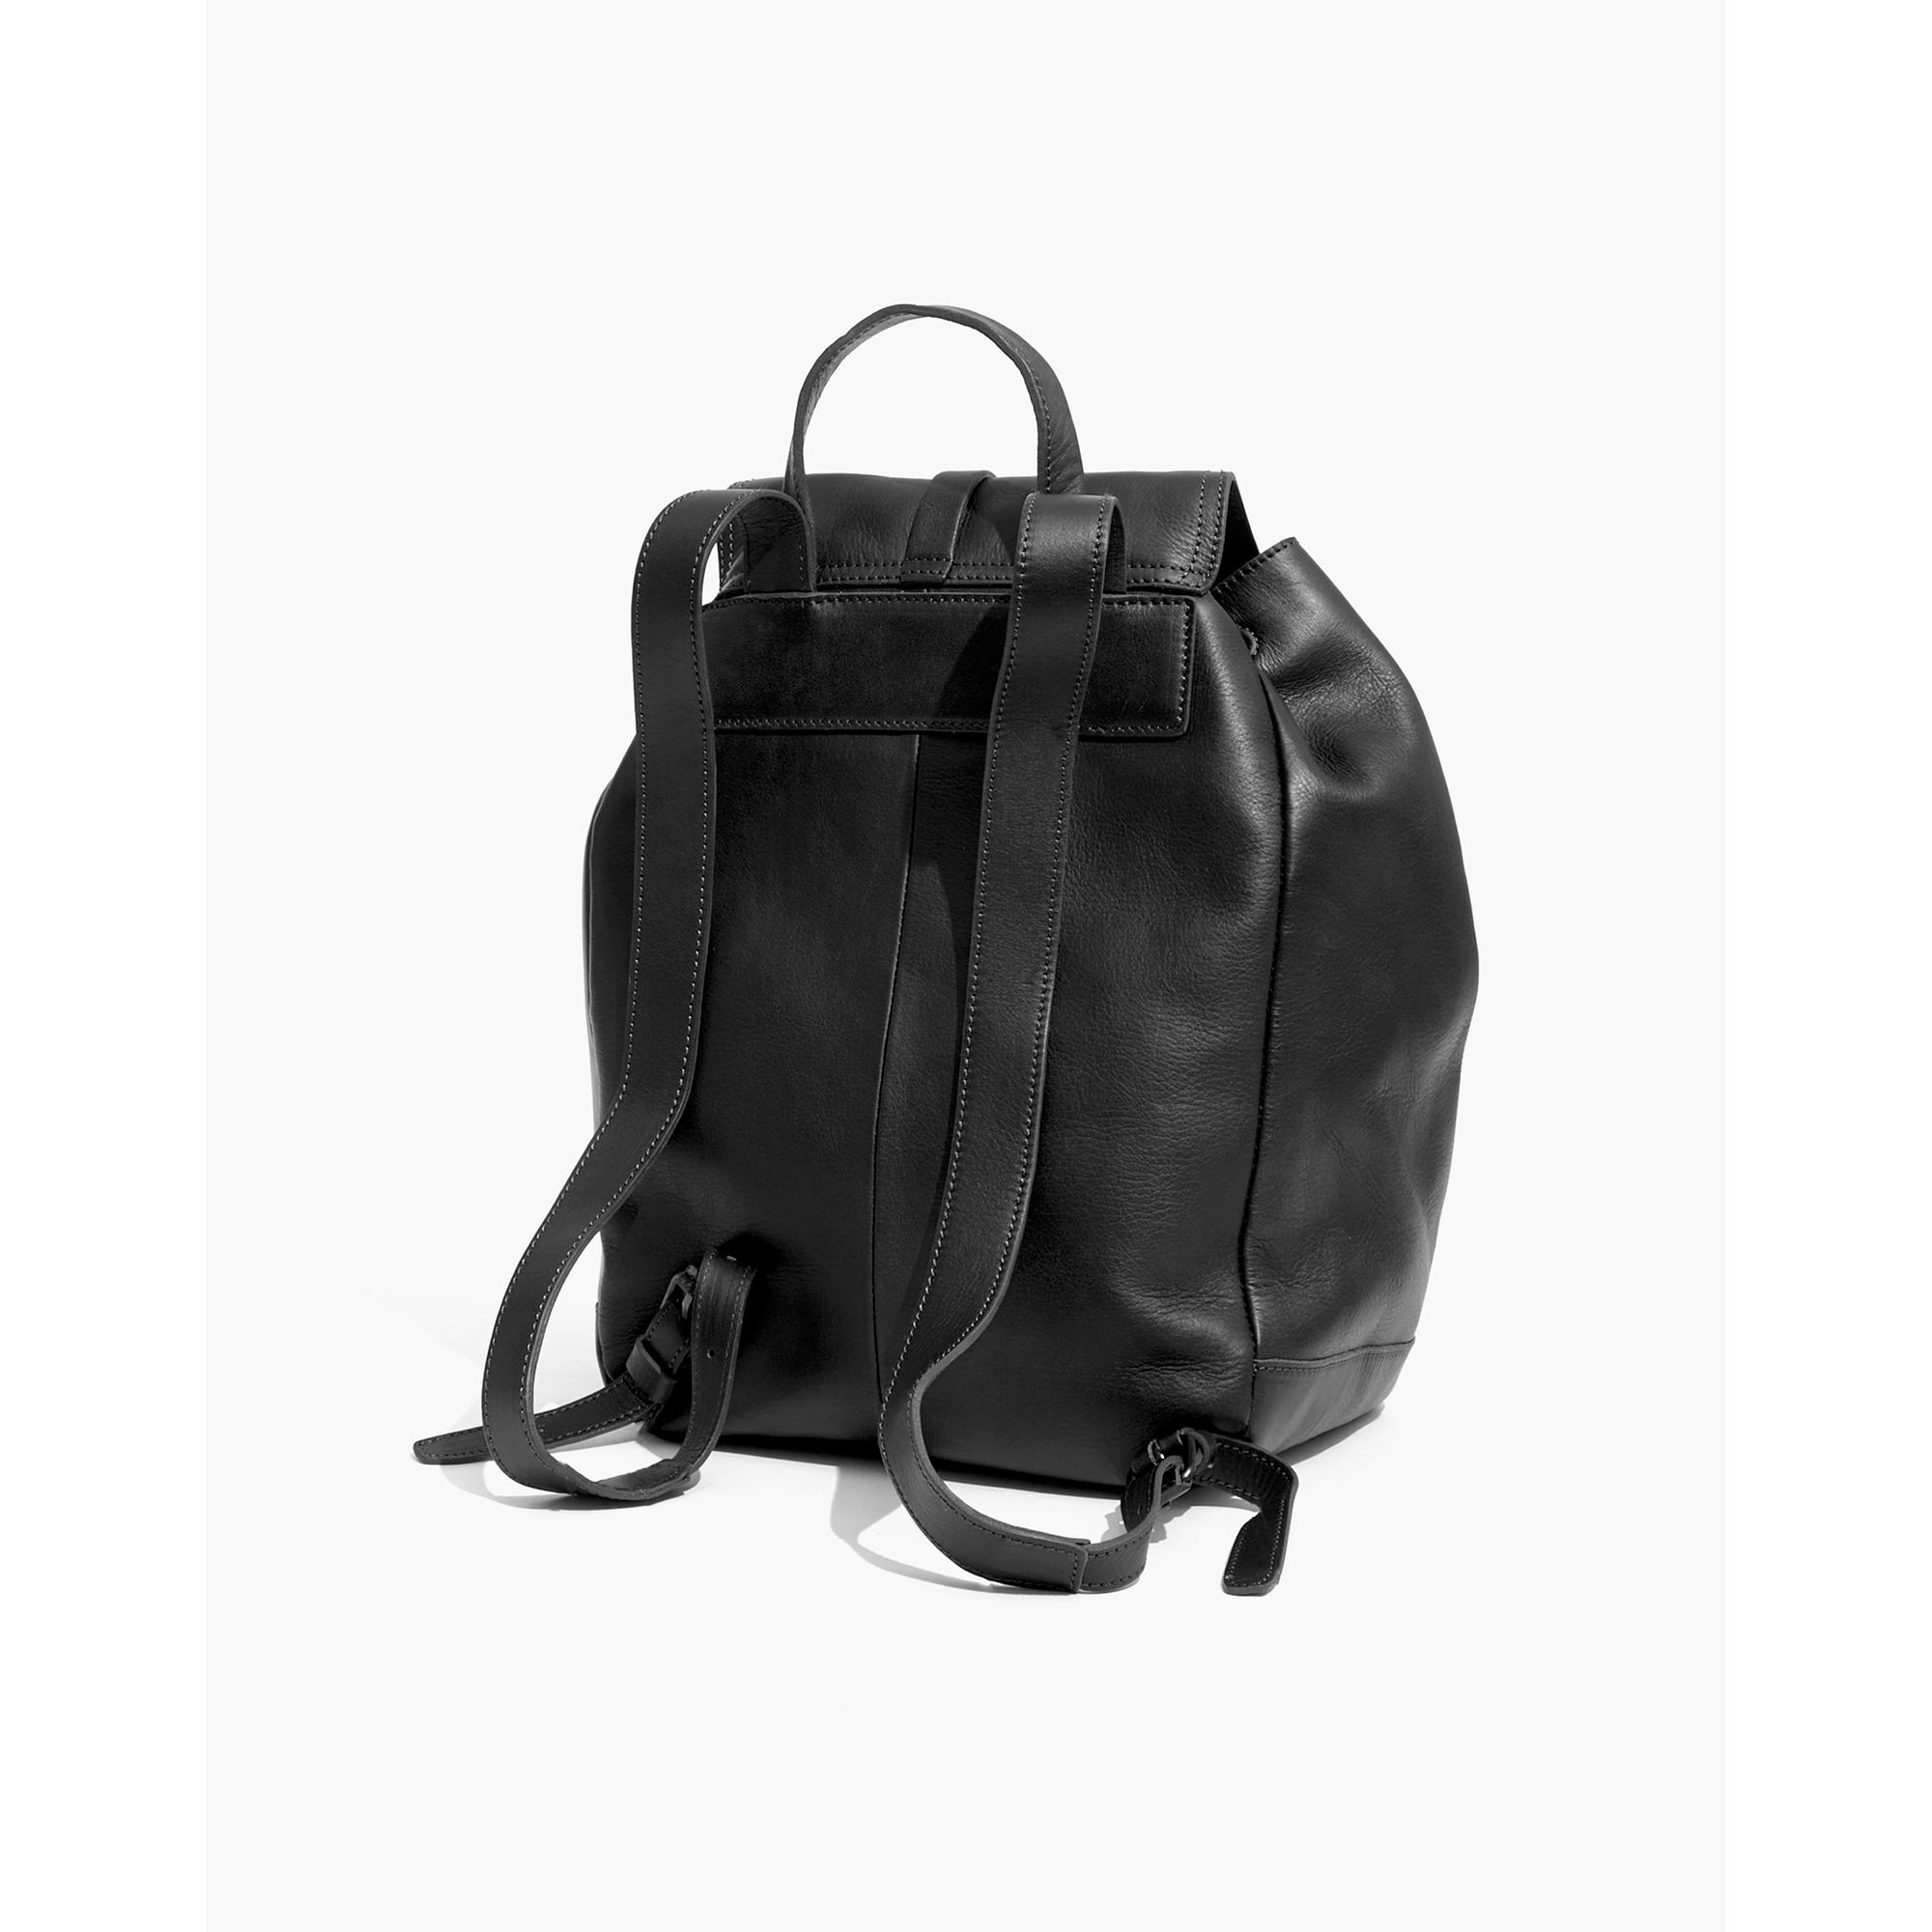 The Transport Rucksack : backpacks | Madewell